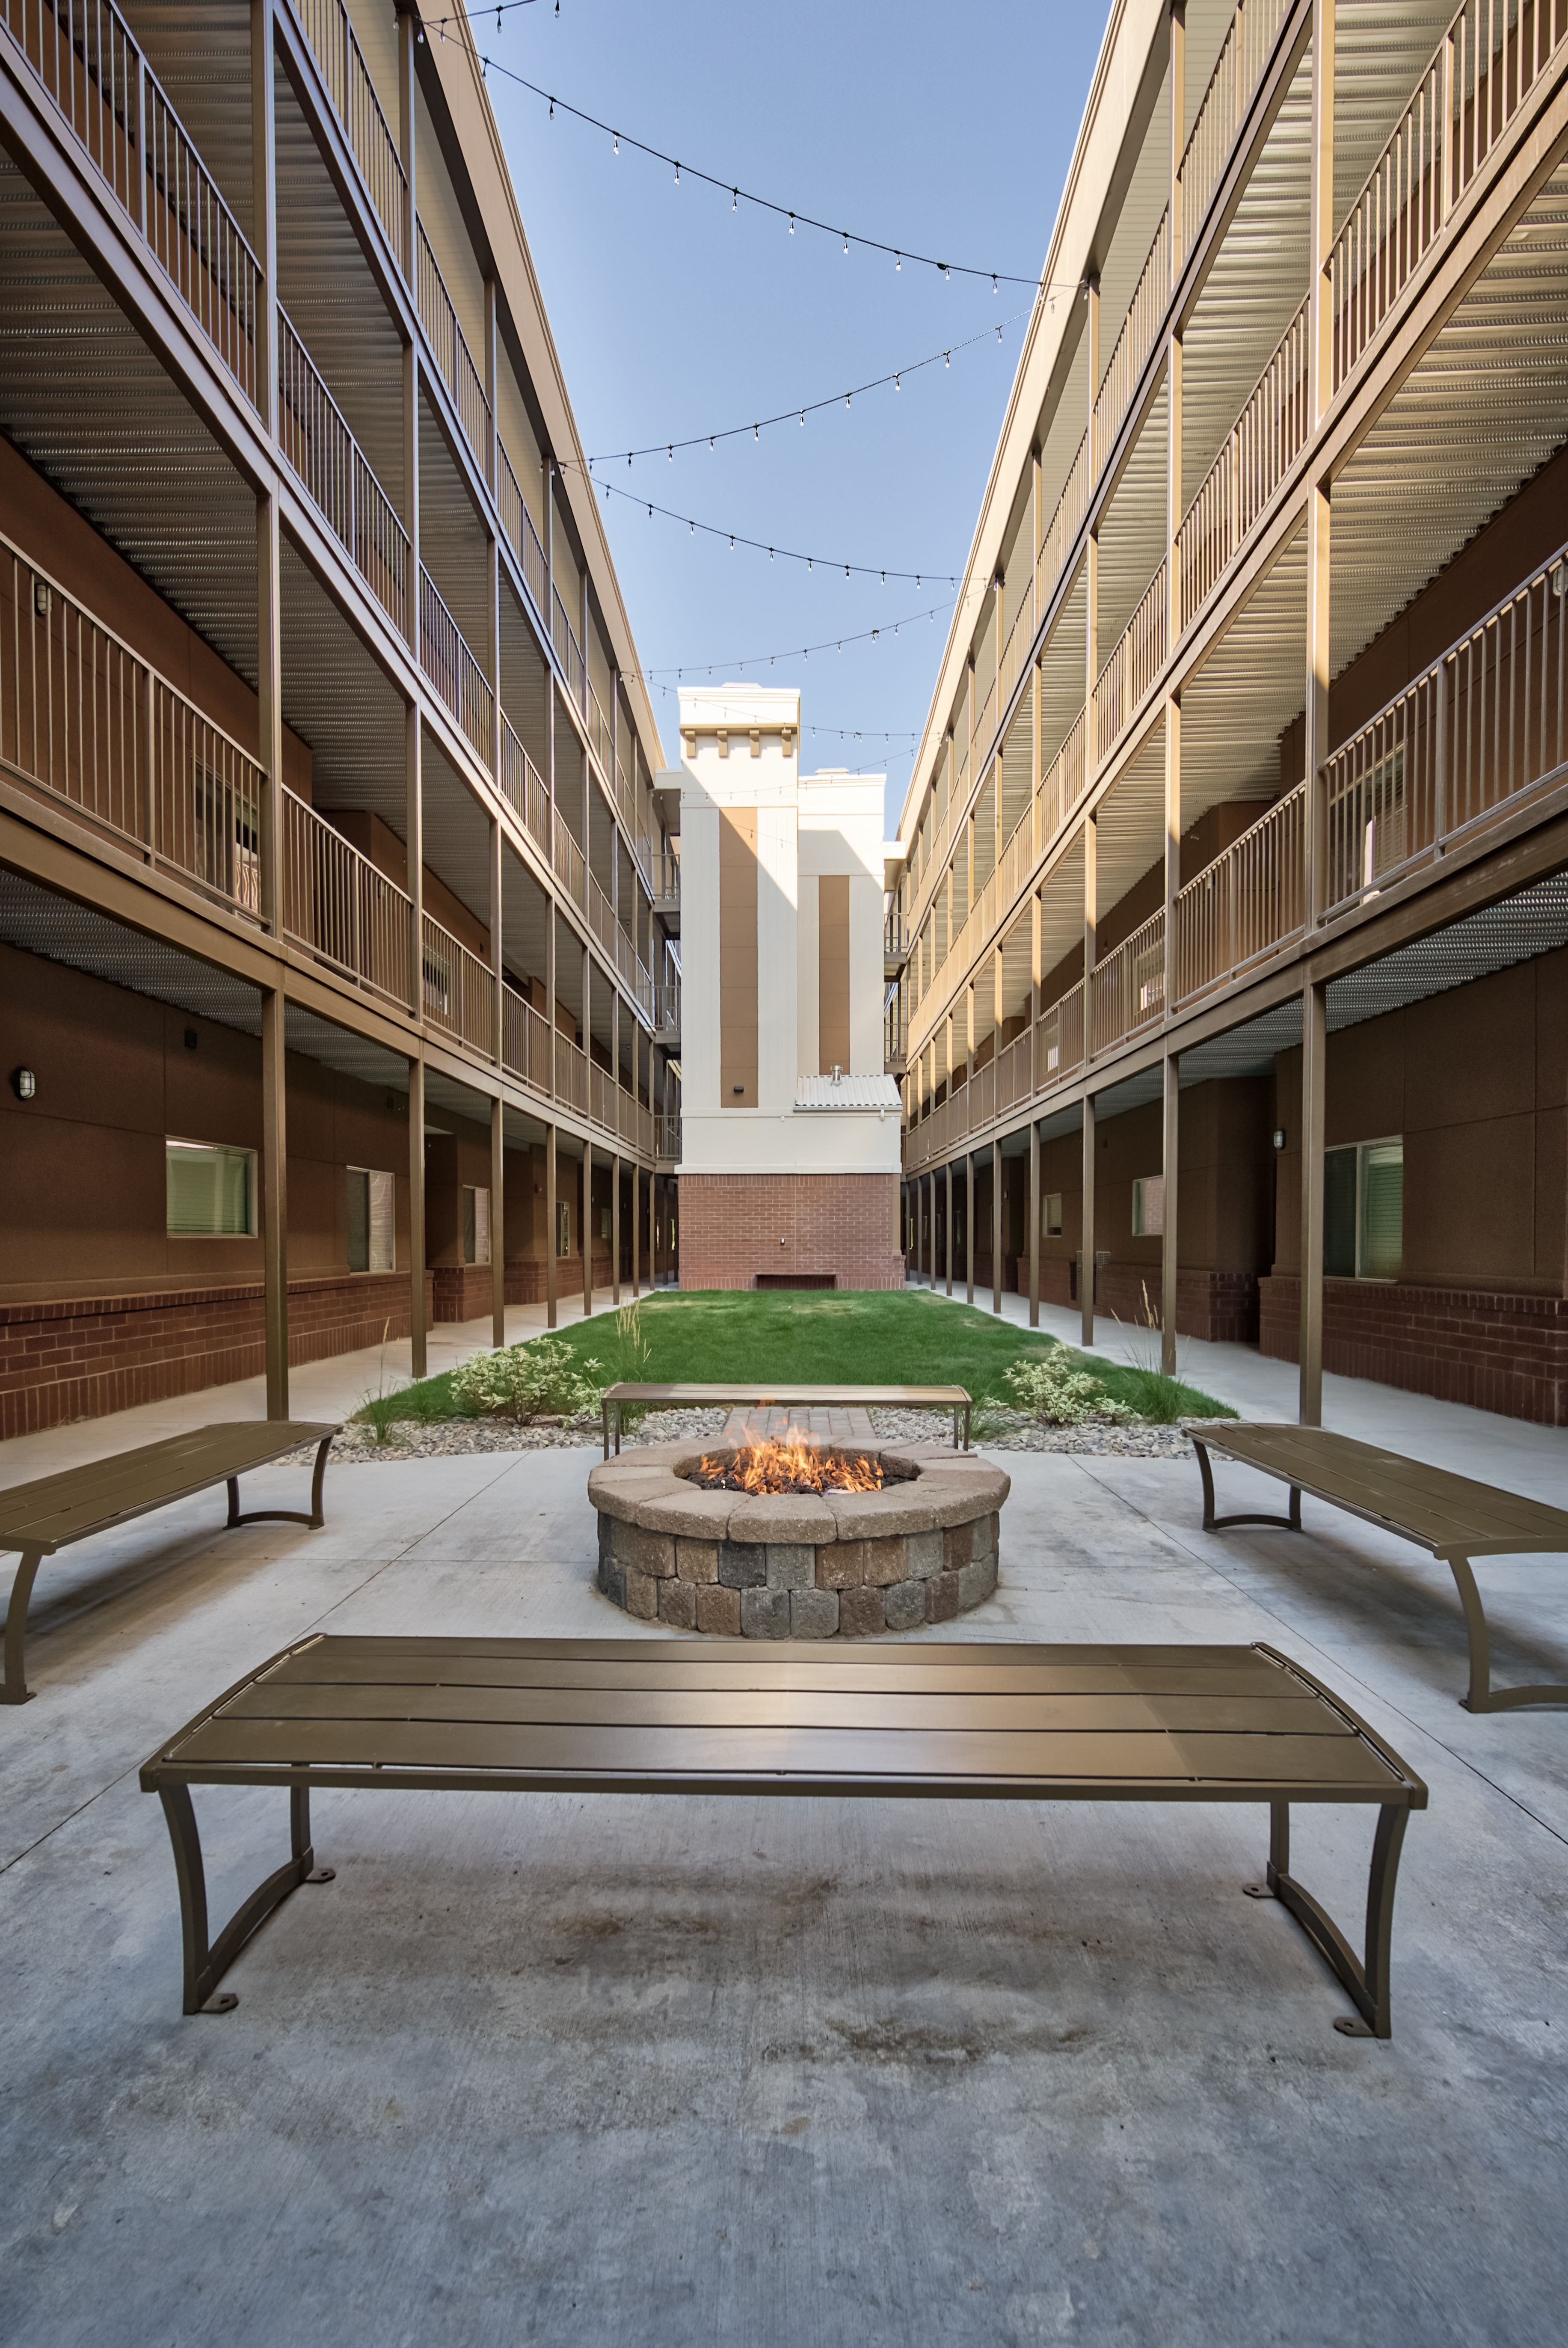 The courtyard is the social hub of The Landing, with two large fire pits and a grill, it is a great space to spend time with friends.